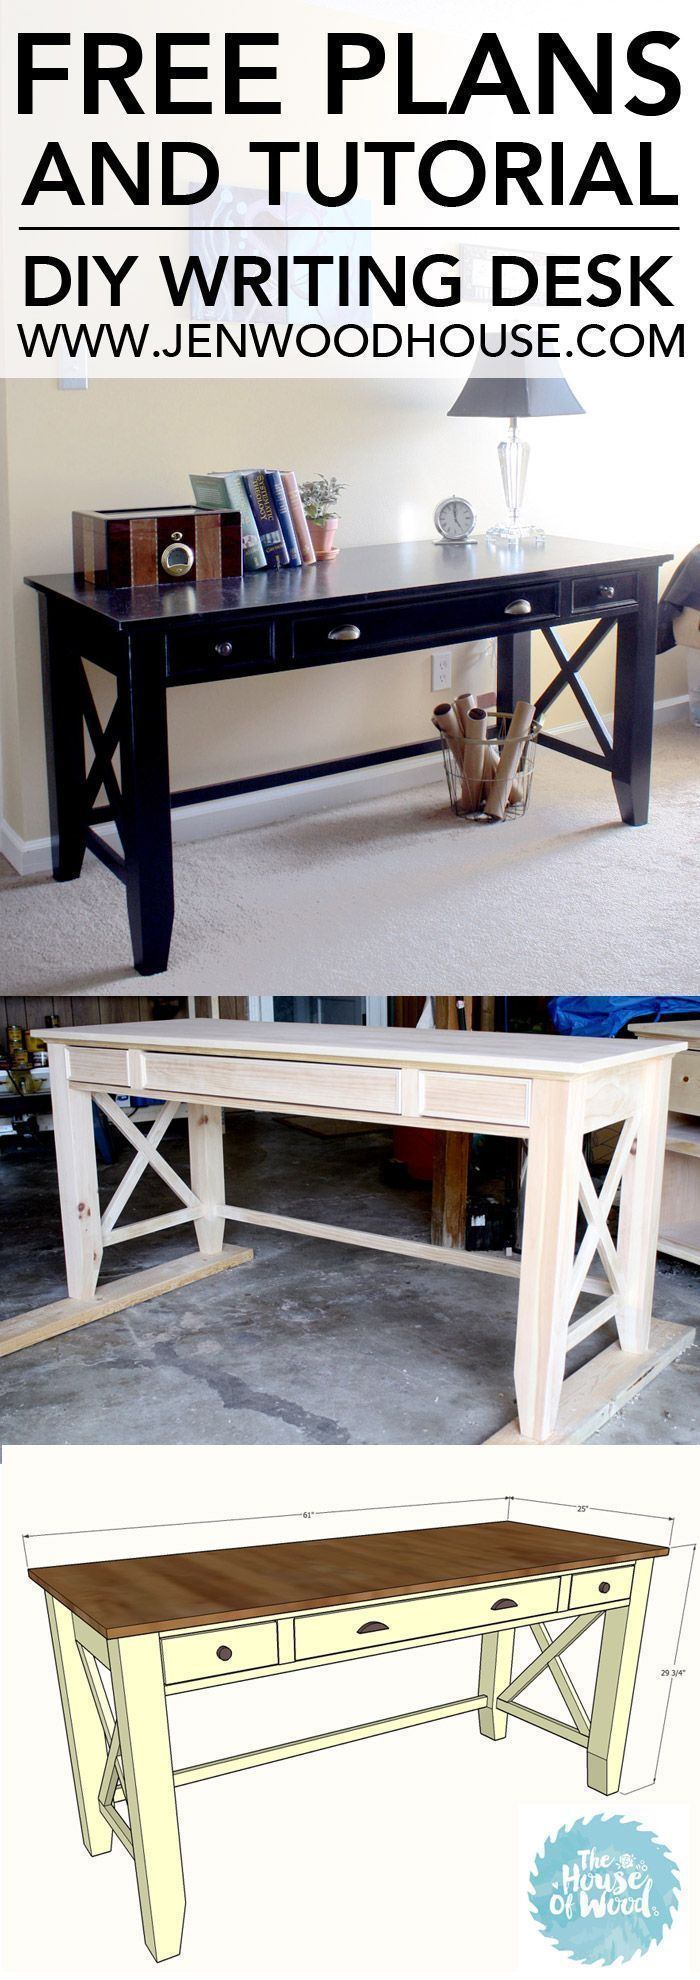 best wood working images on pinterest salvaged furniture